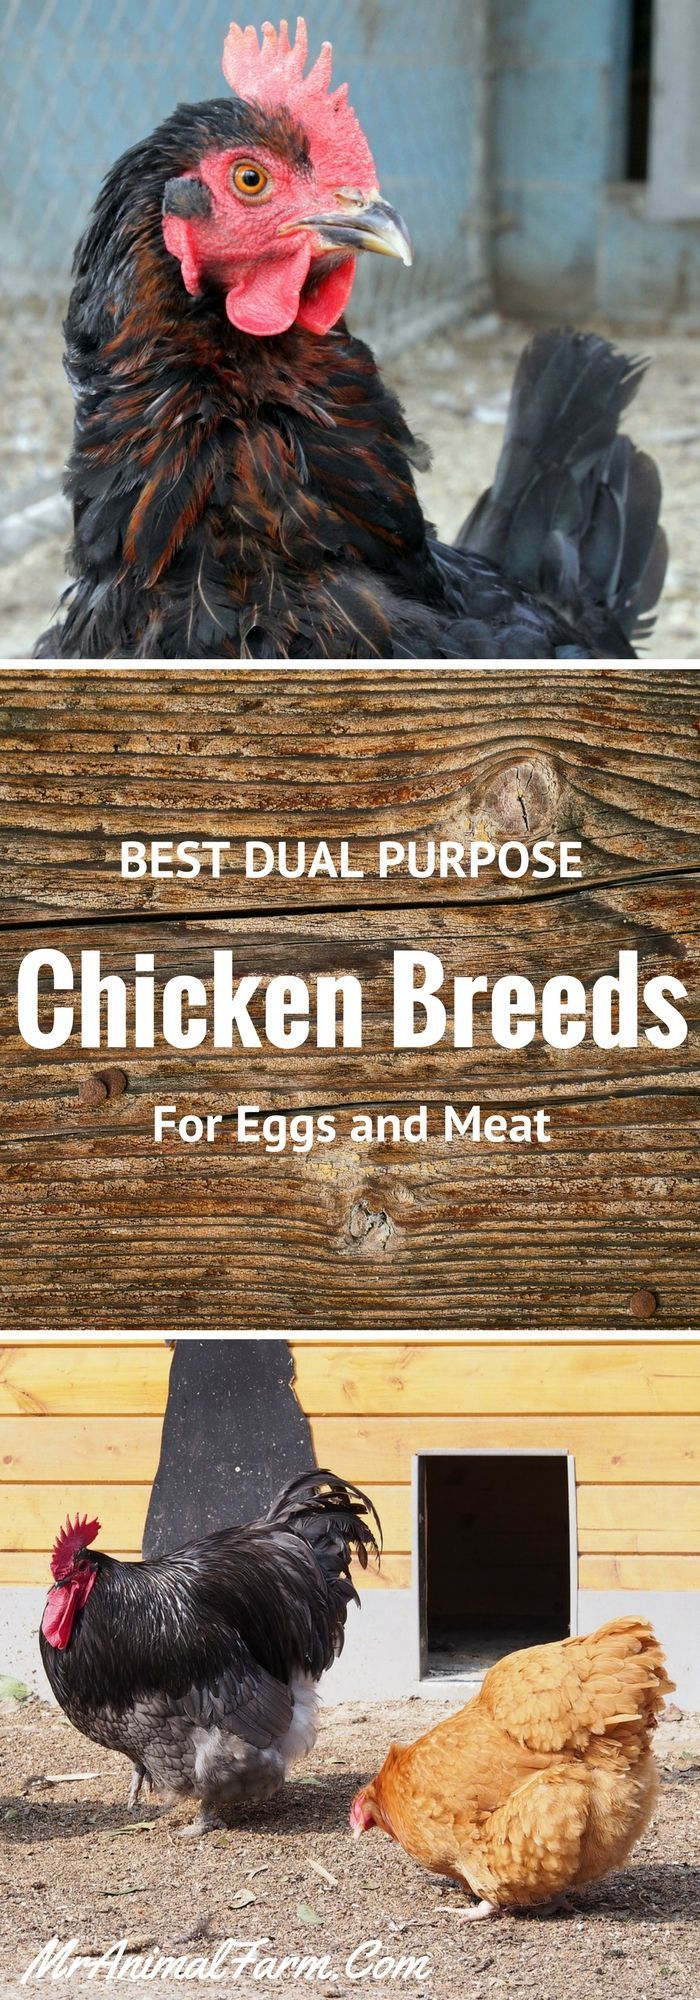 Best dual purpose chicken breeds.  Find out the best chicken breeds for both eggs and meat.